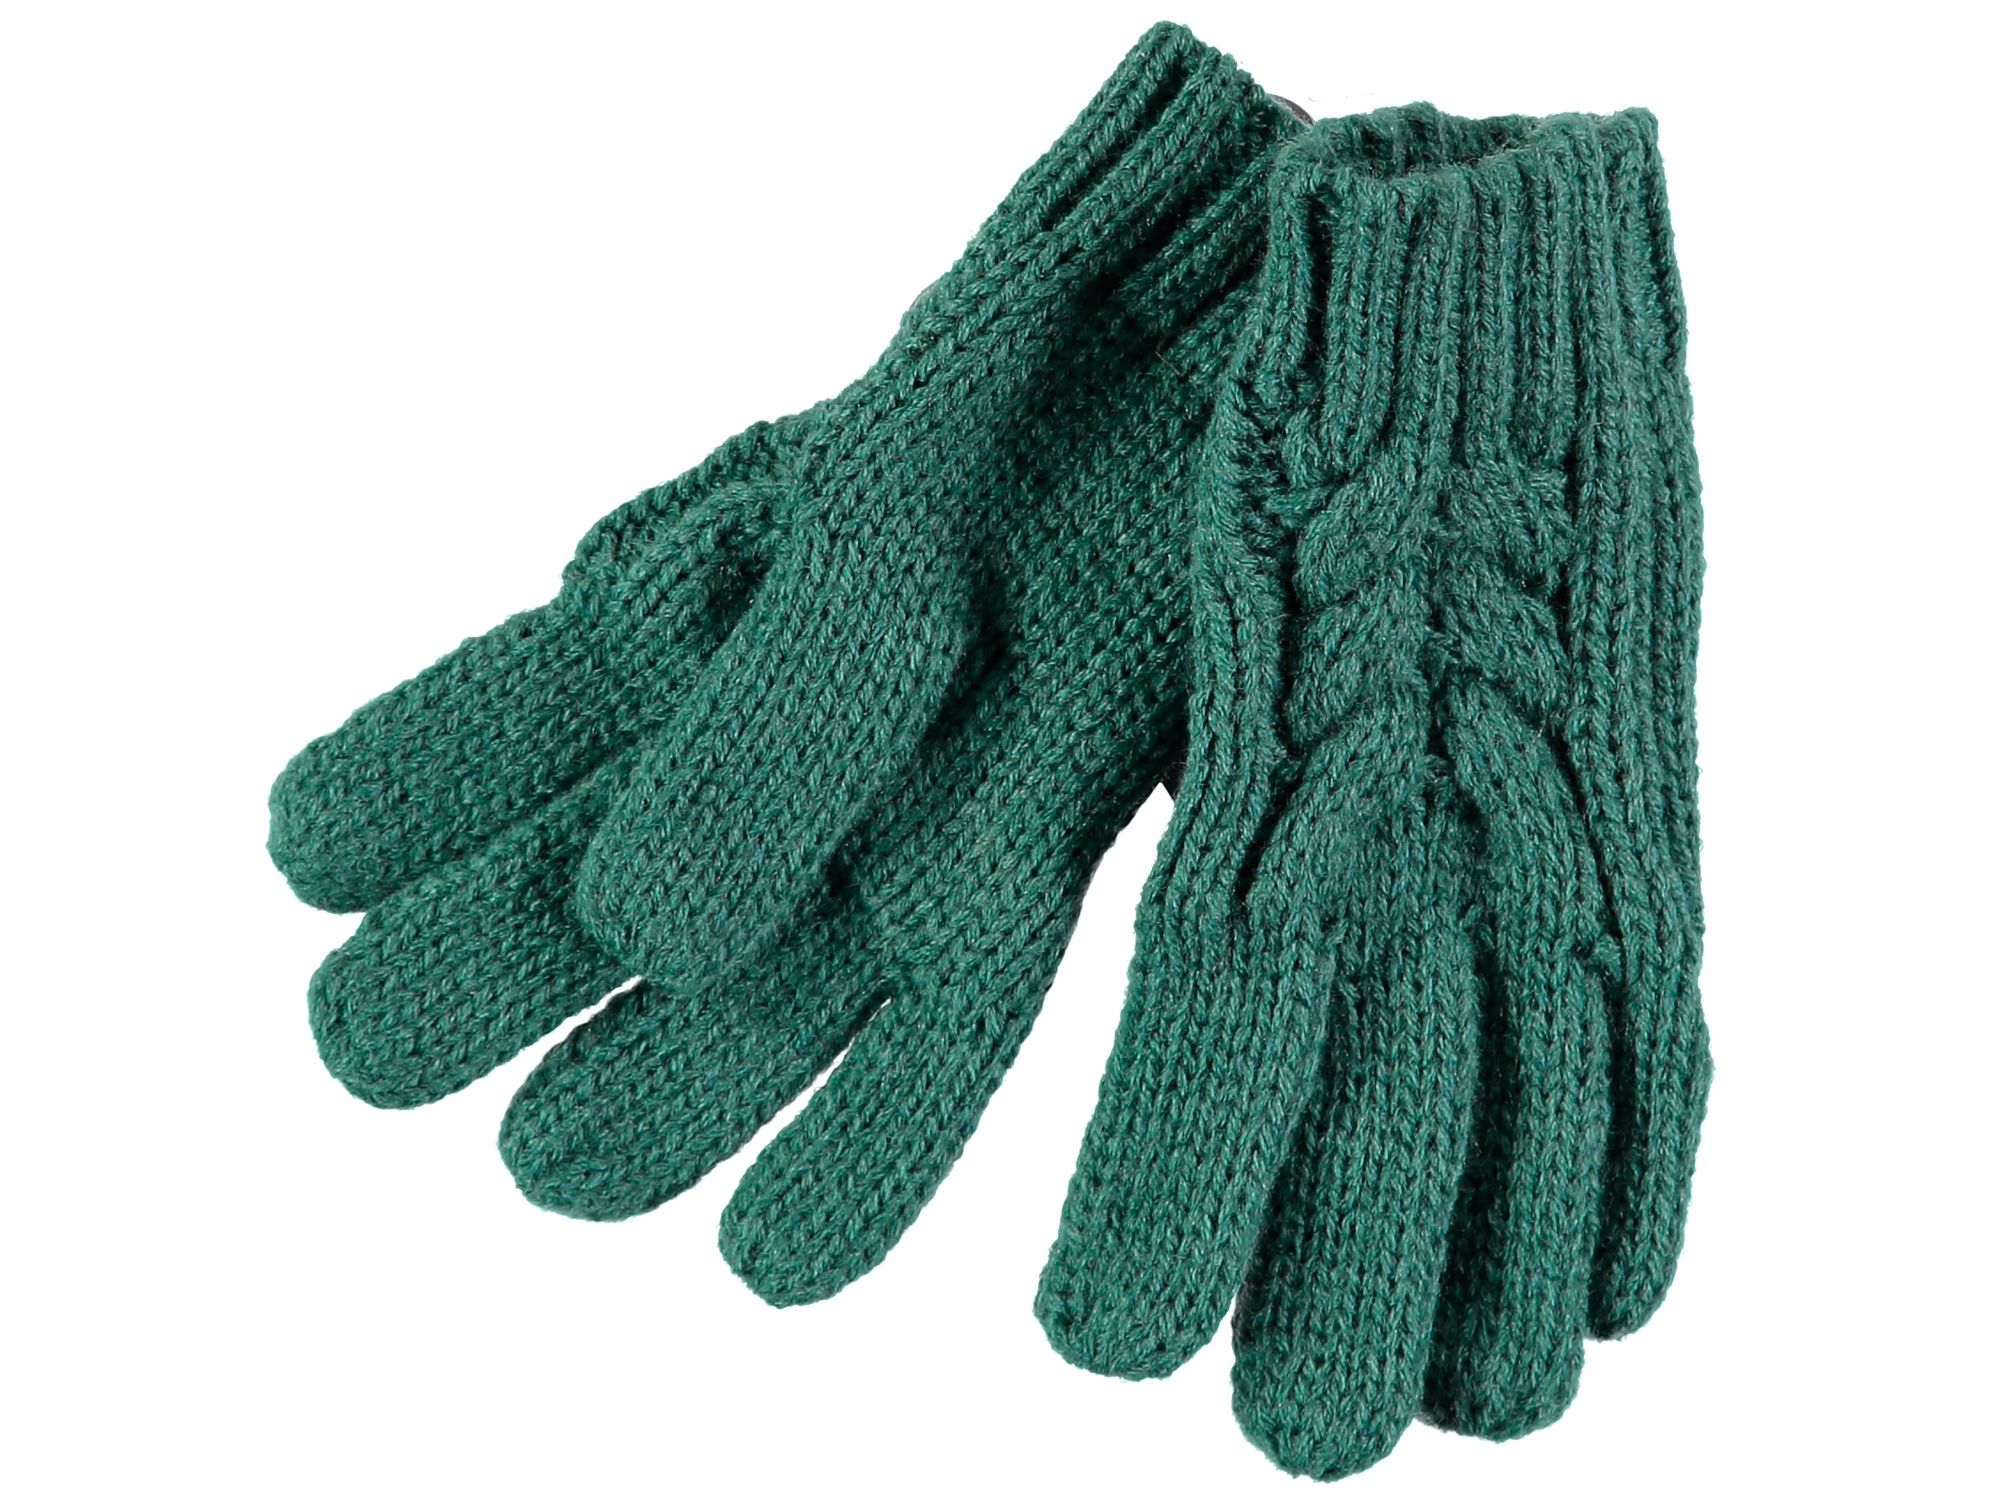 Rockin' Baby Rockin' Baby Teal Cable Knit Gloves, Teal